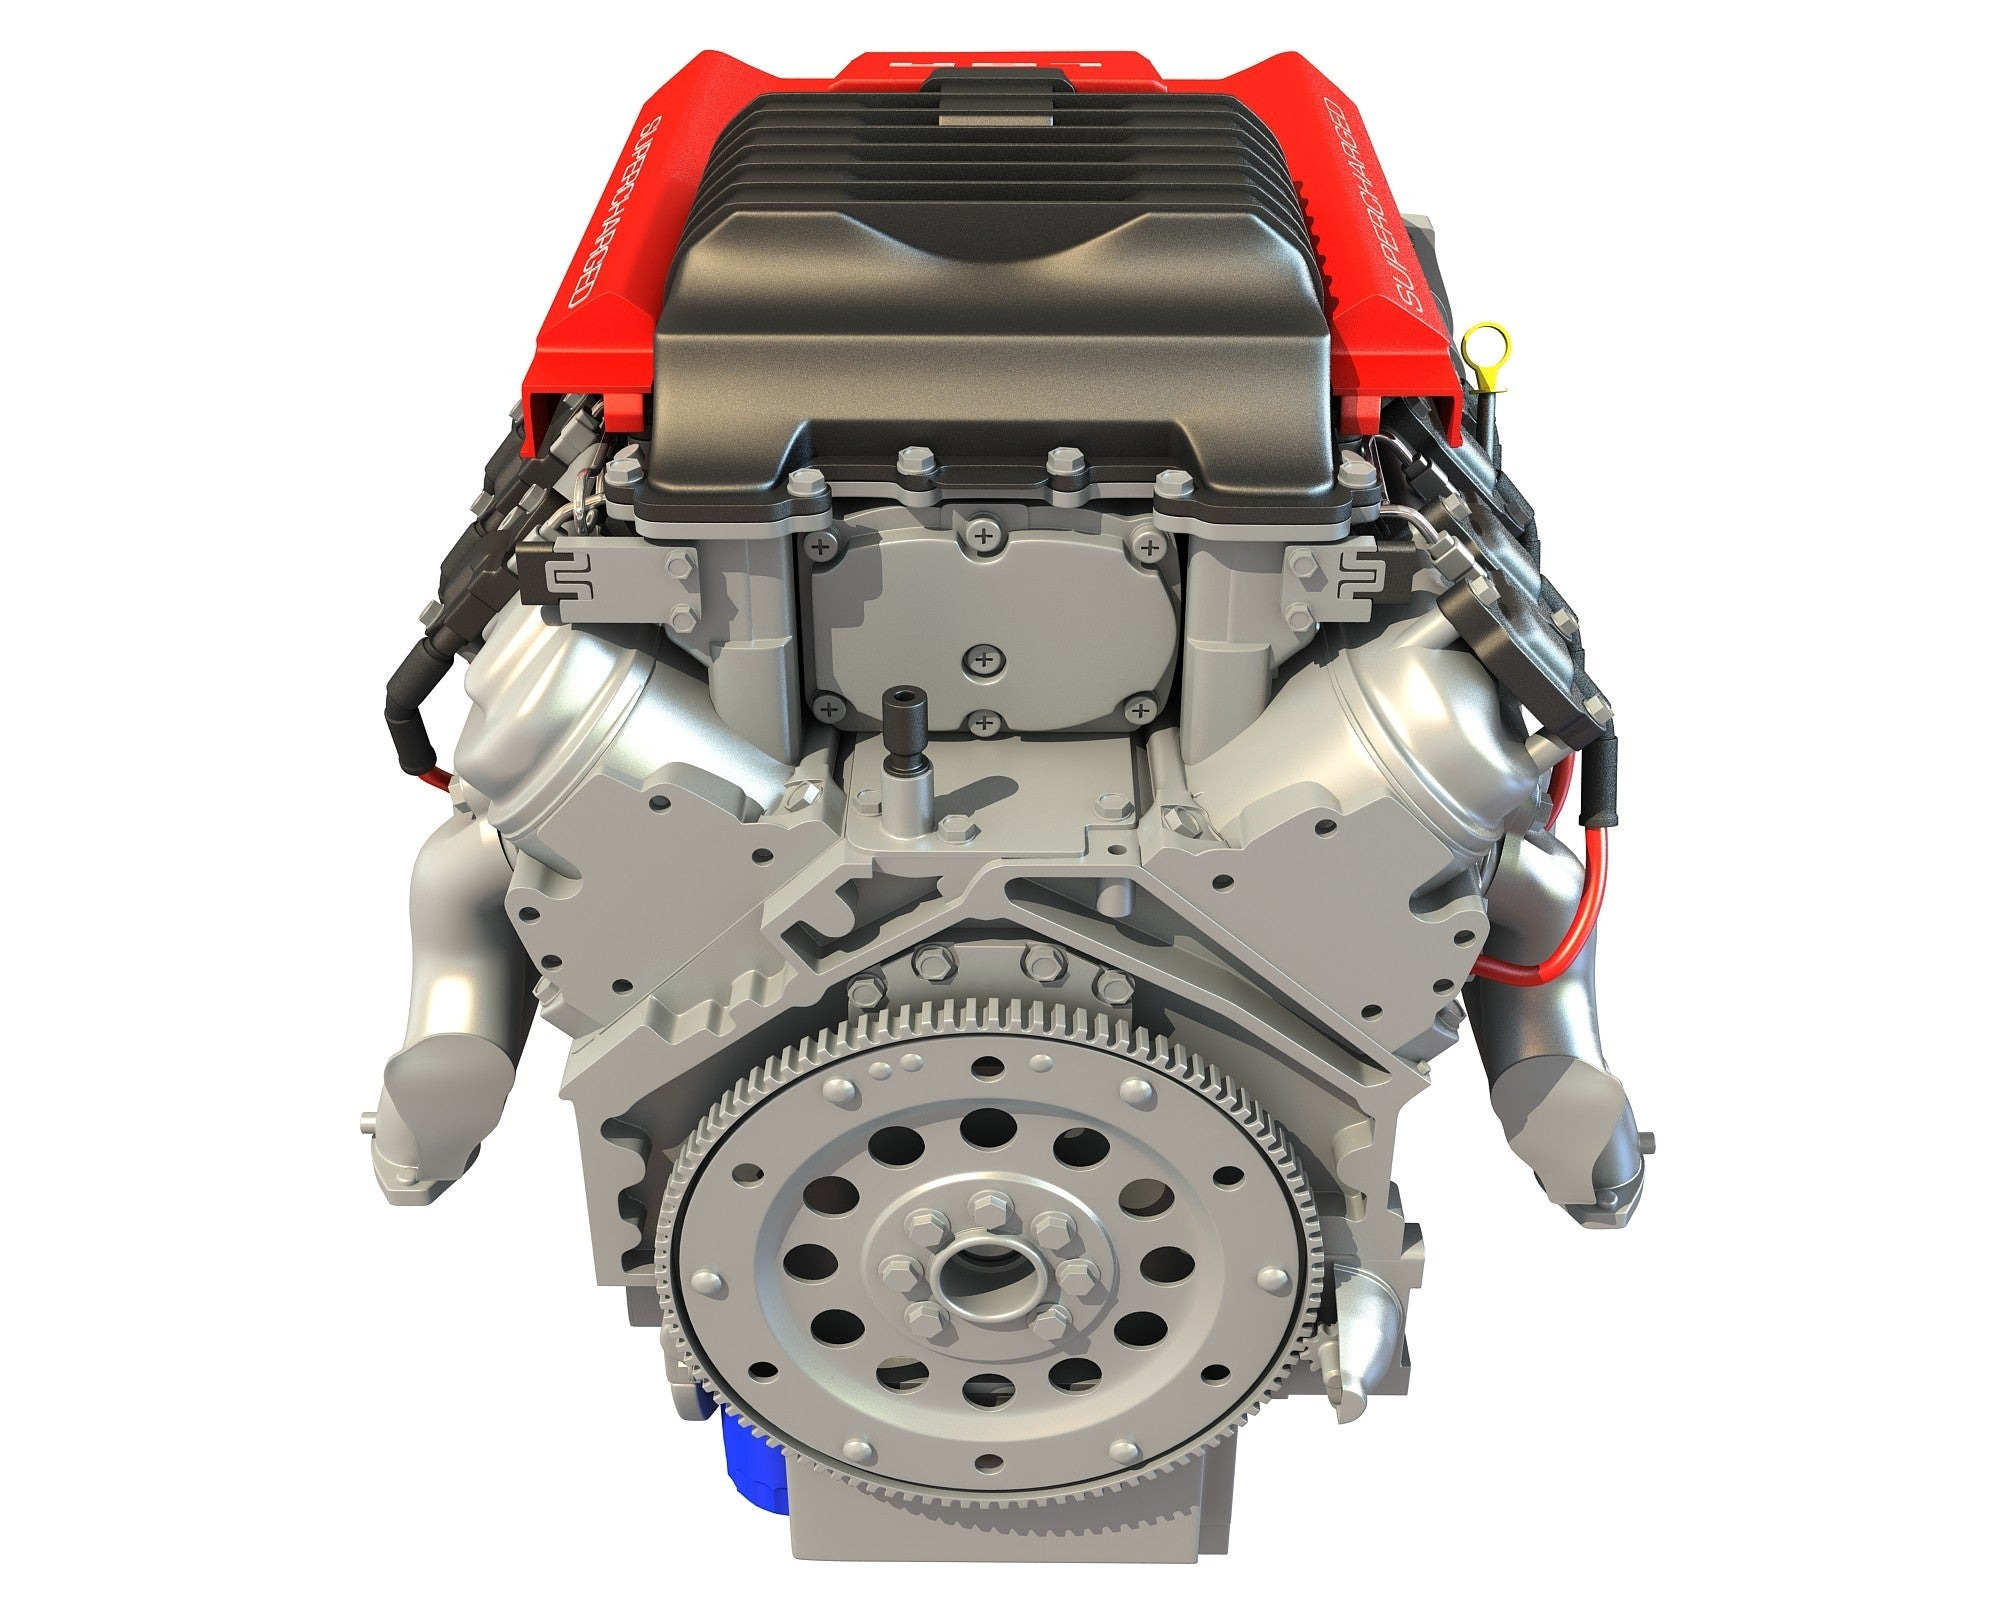 Chevrolet 3D Engine Model